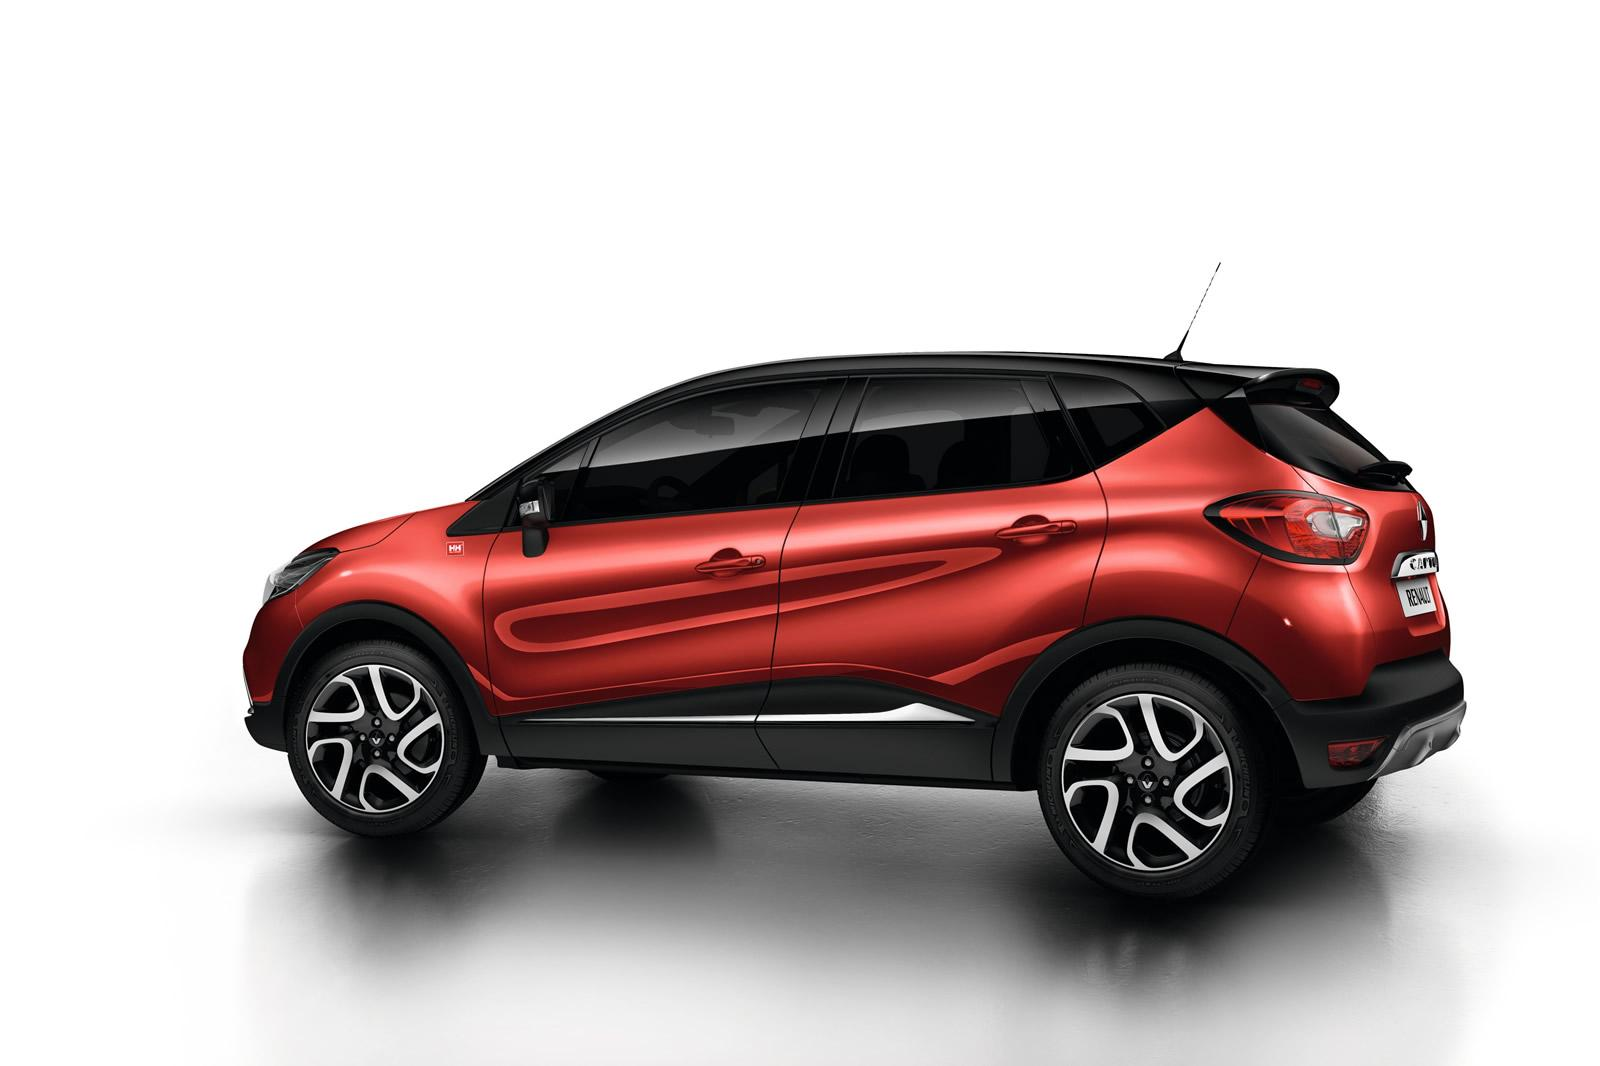 renault captur gets flame red paint and extended grip system autoevolution. Black Bedroom Furniture Sets. Home Design Ideas